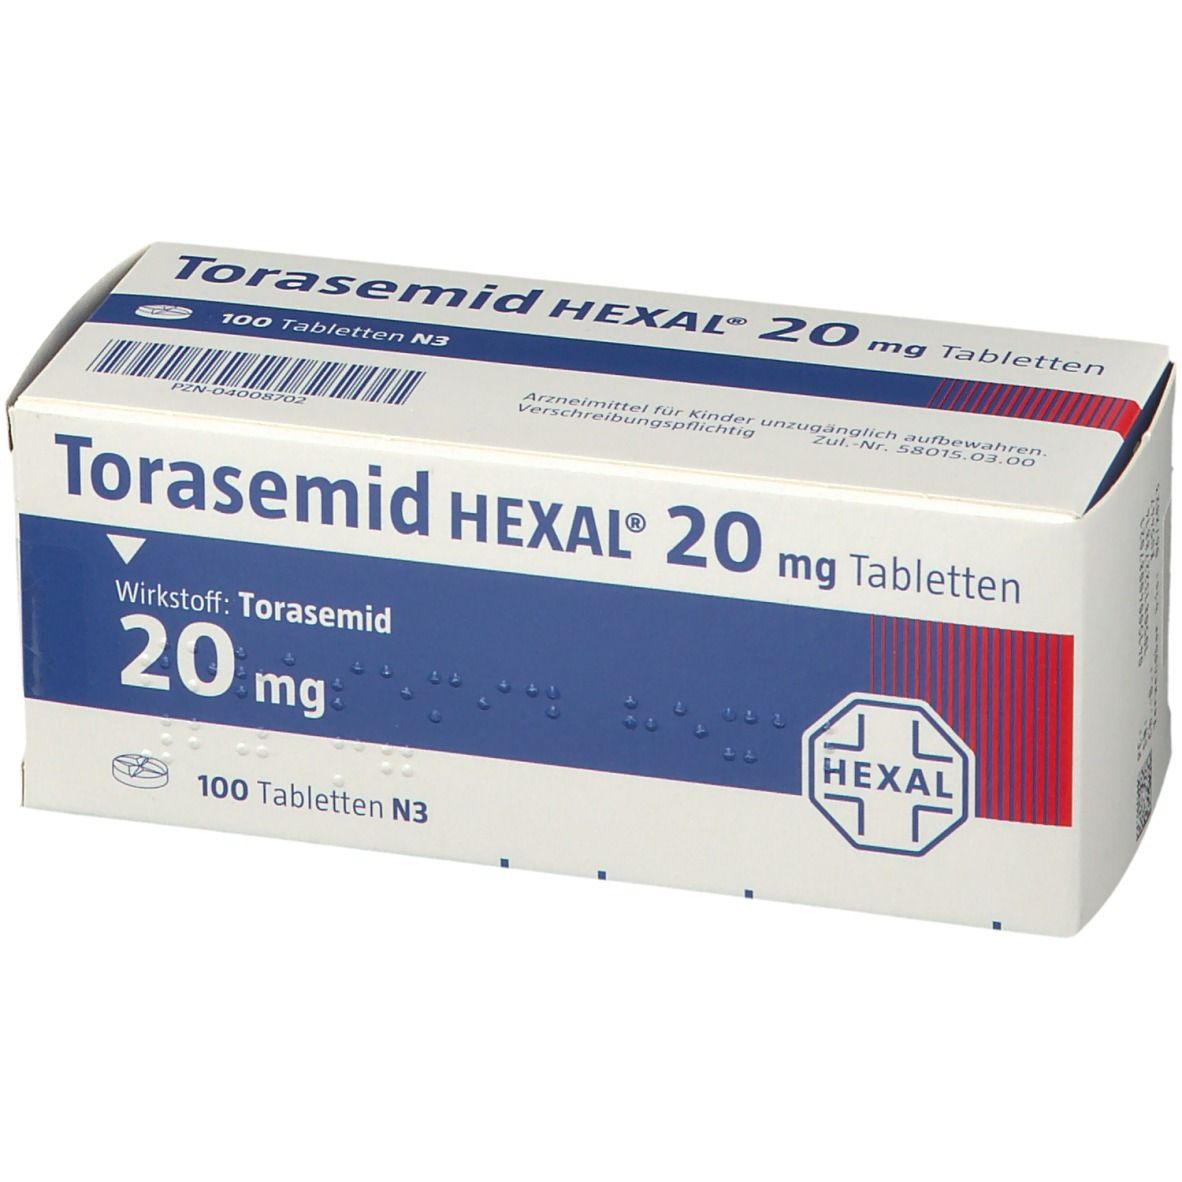 Torasemid Hexal 20 mg Tabletten